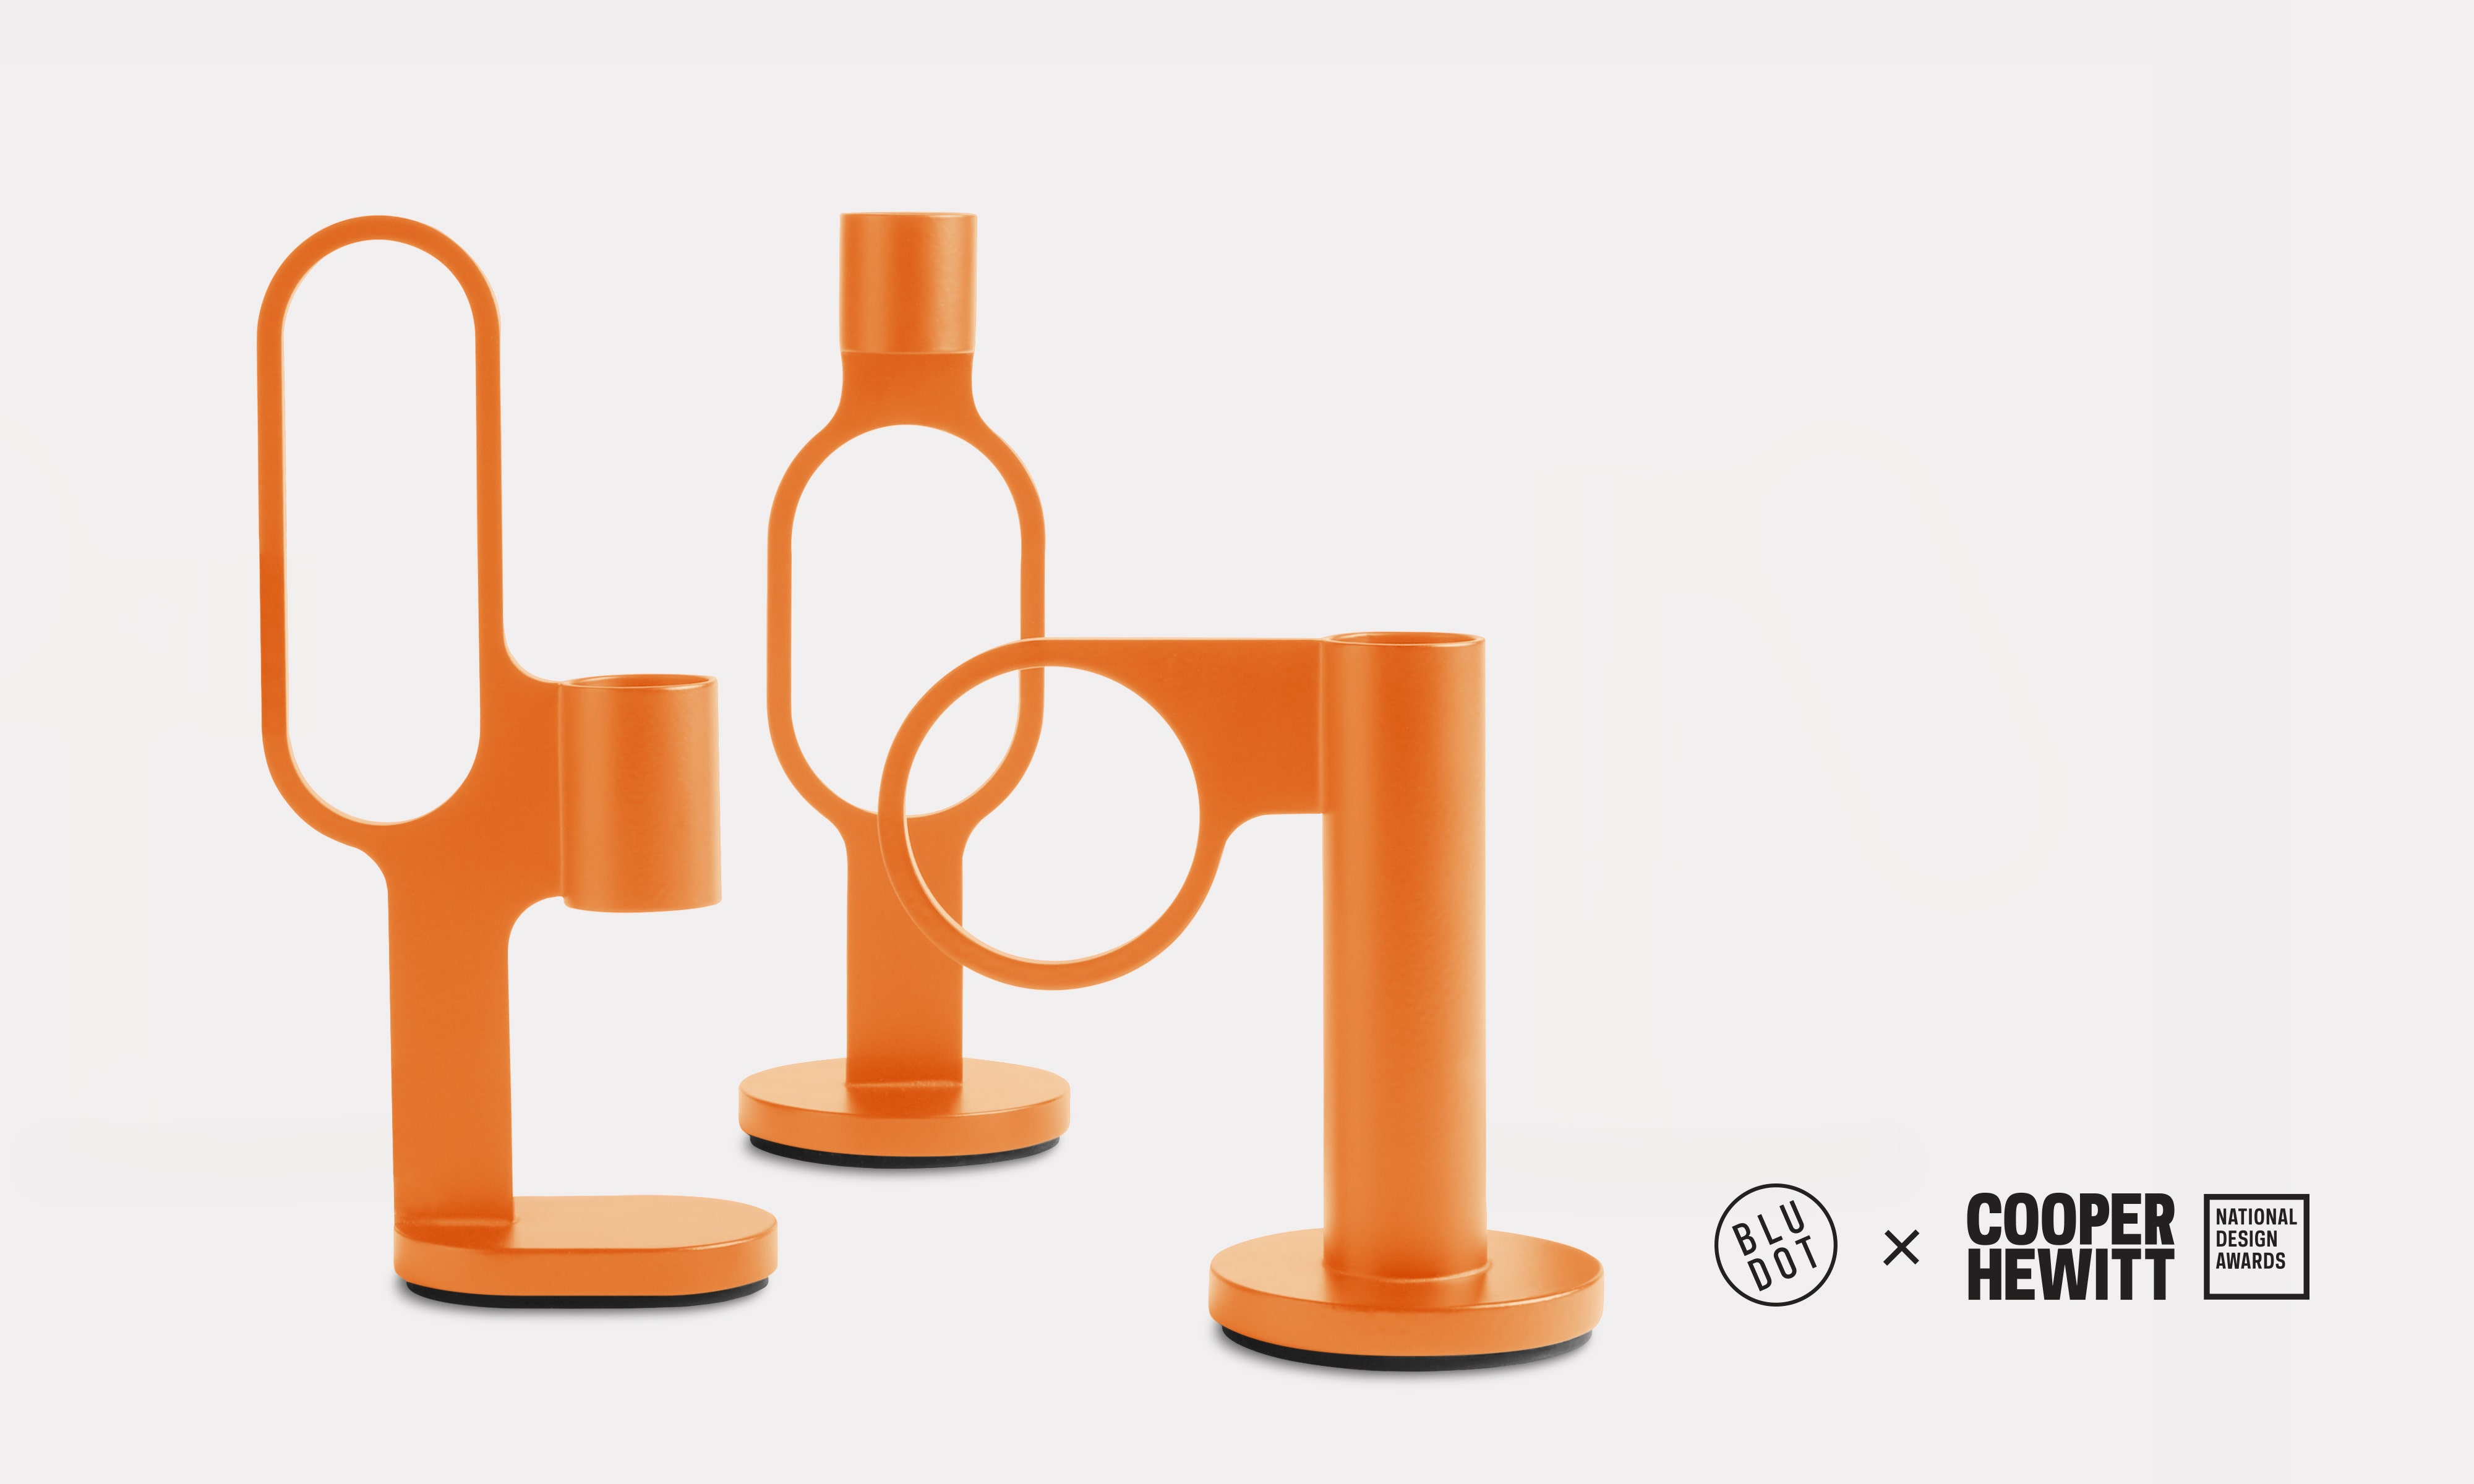 Cooper Hewitt National Design Award Who Goes These Special Edition Candle Holders